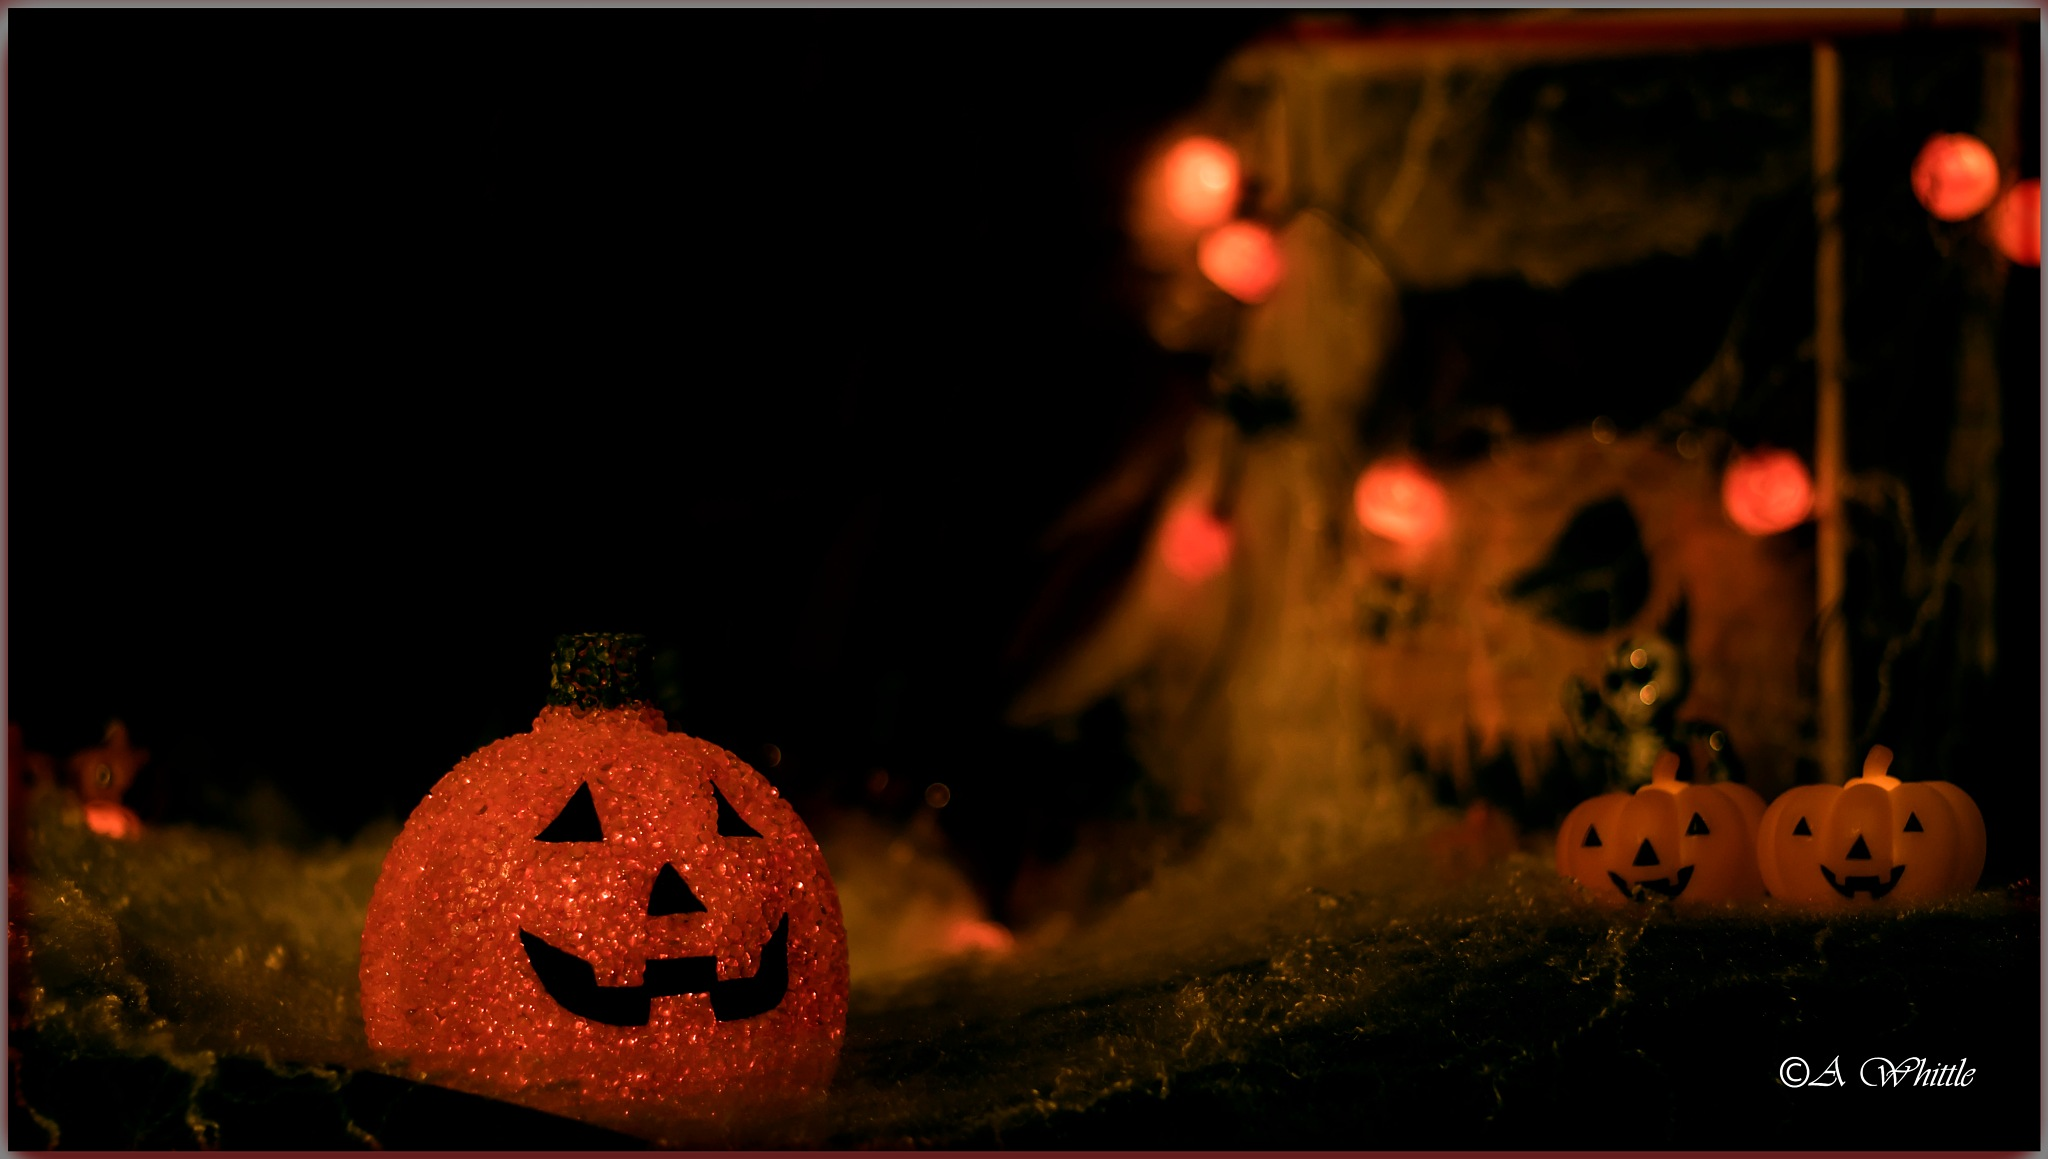 Pumpkin by Andy Whittle